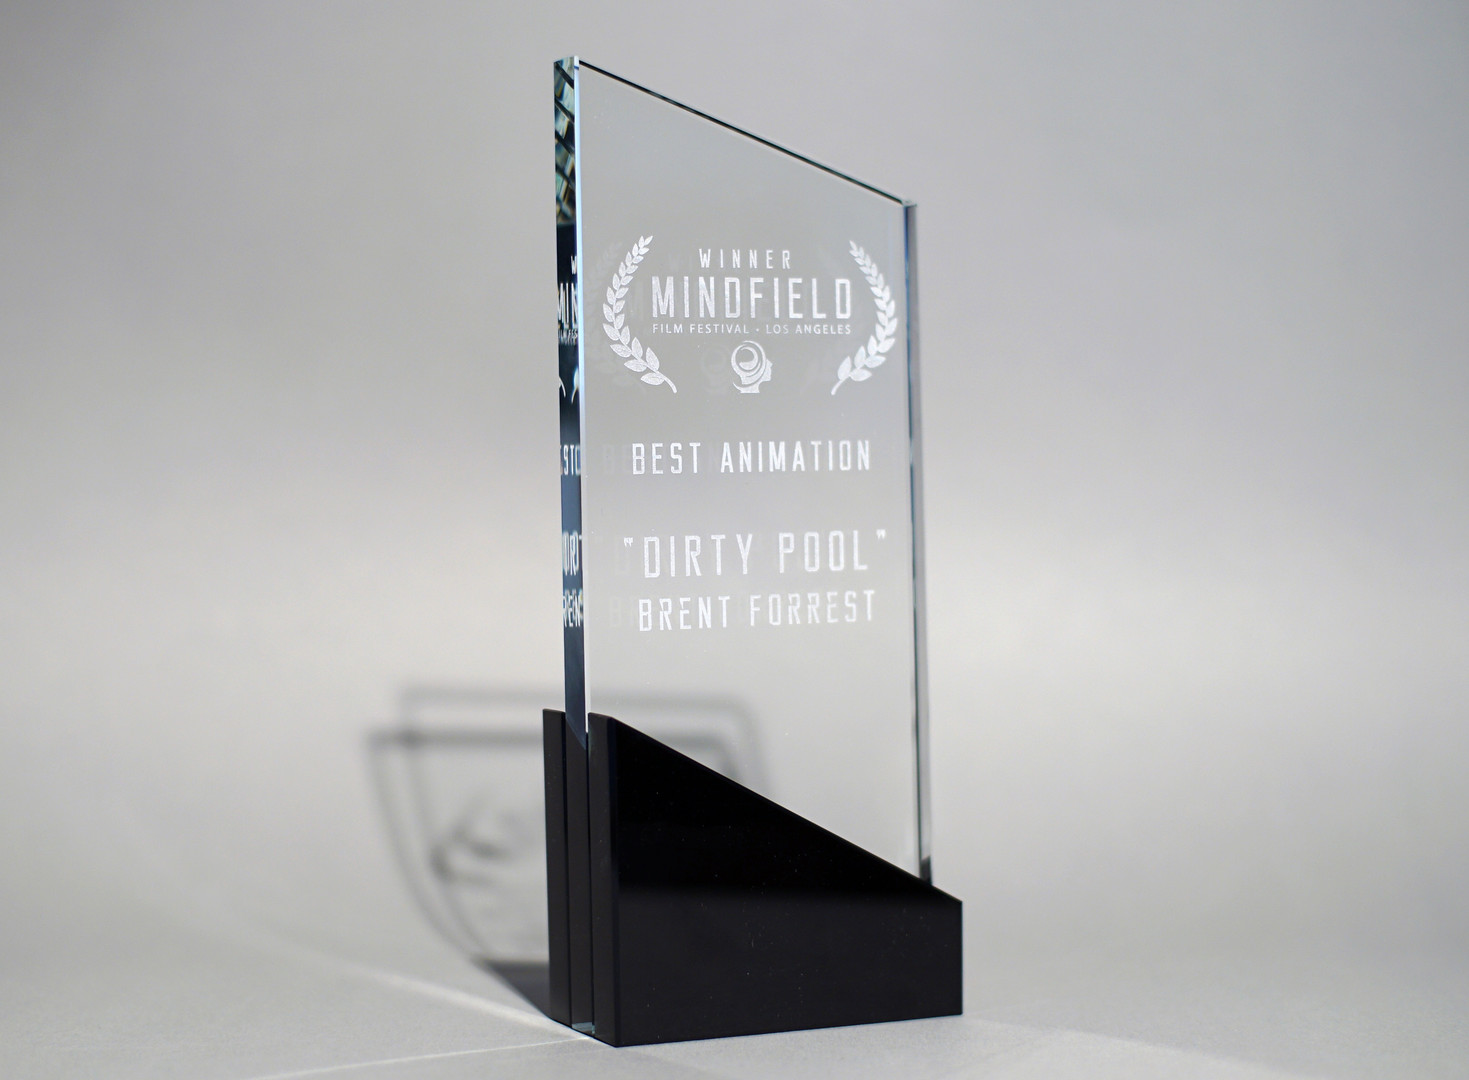 Mindfield trophy